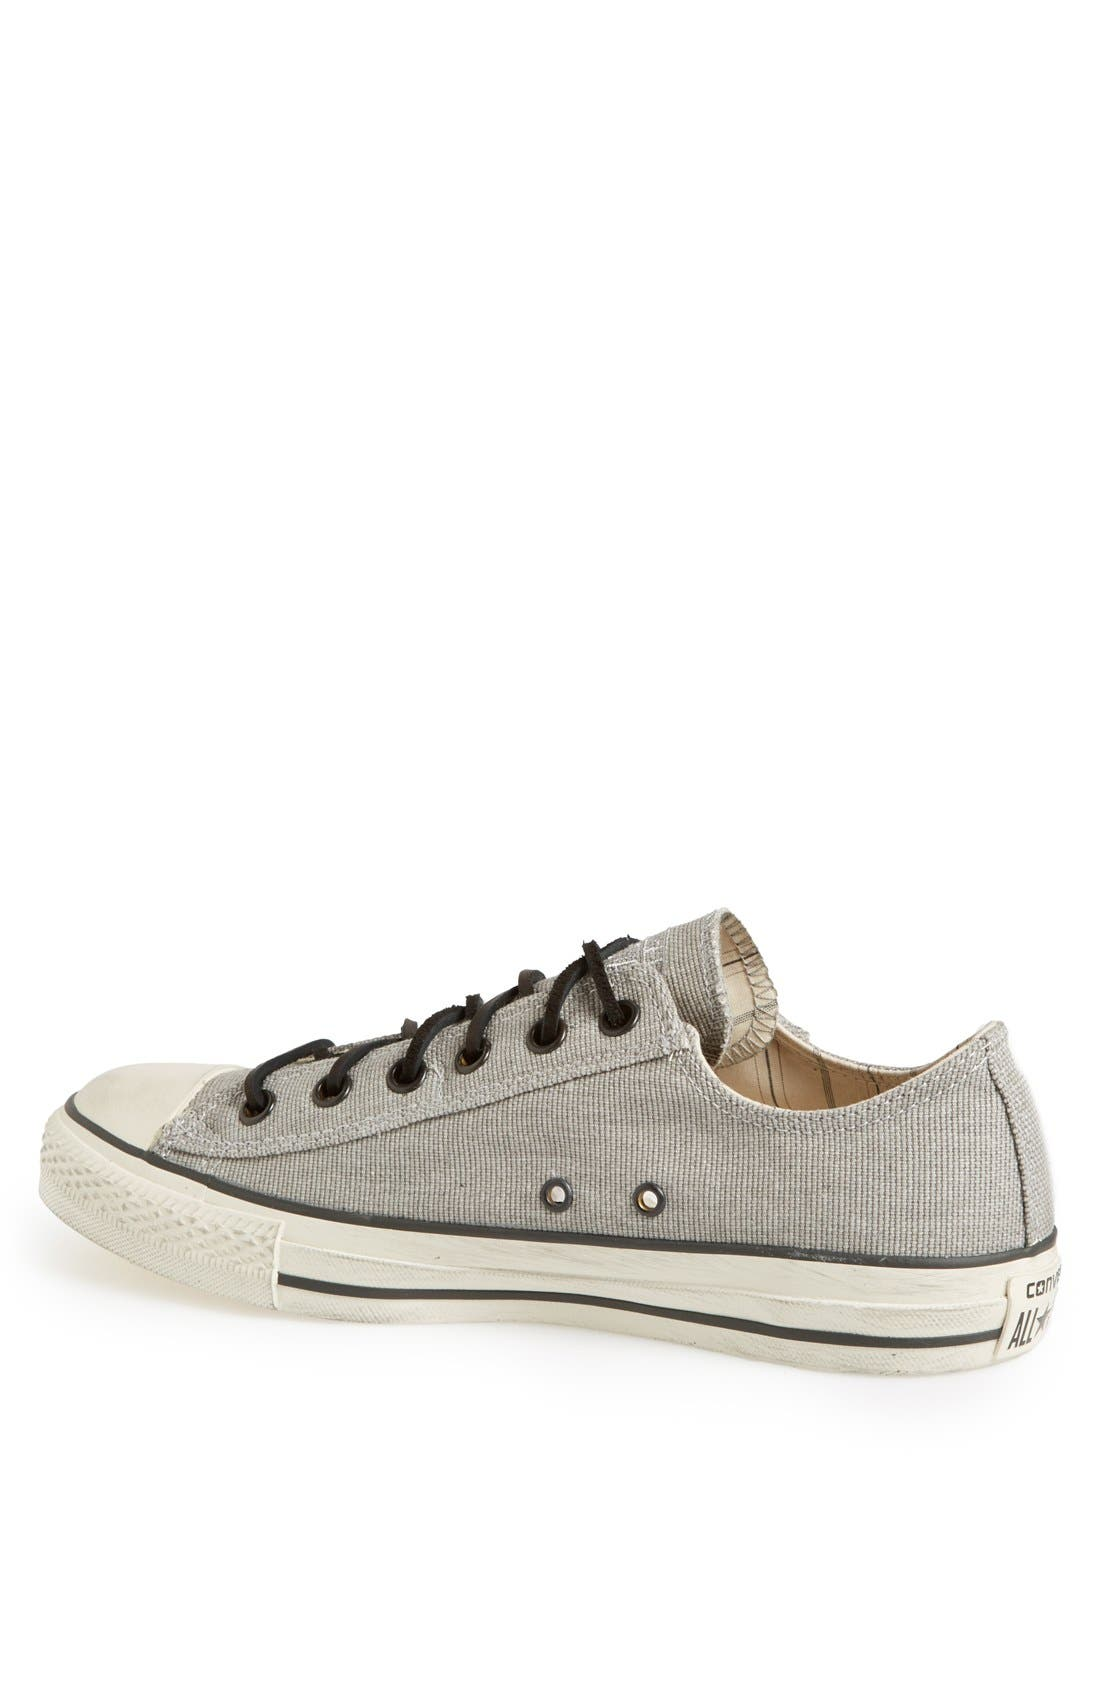 Chuck Taylor<sup>®</sup> Low Sneaker,                             Alternate thumbnail 4, color,                             020